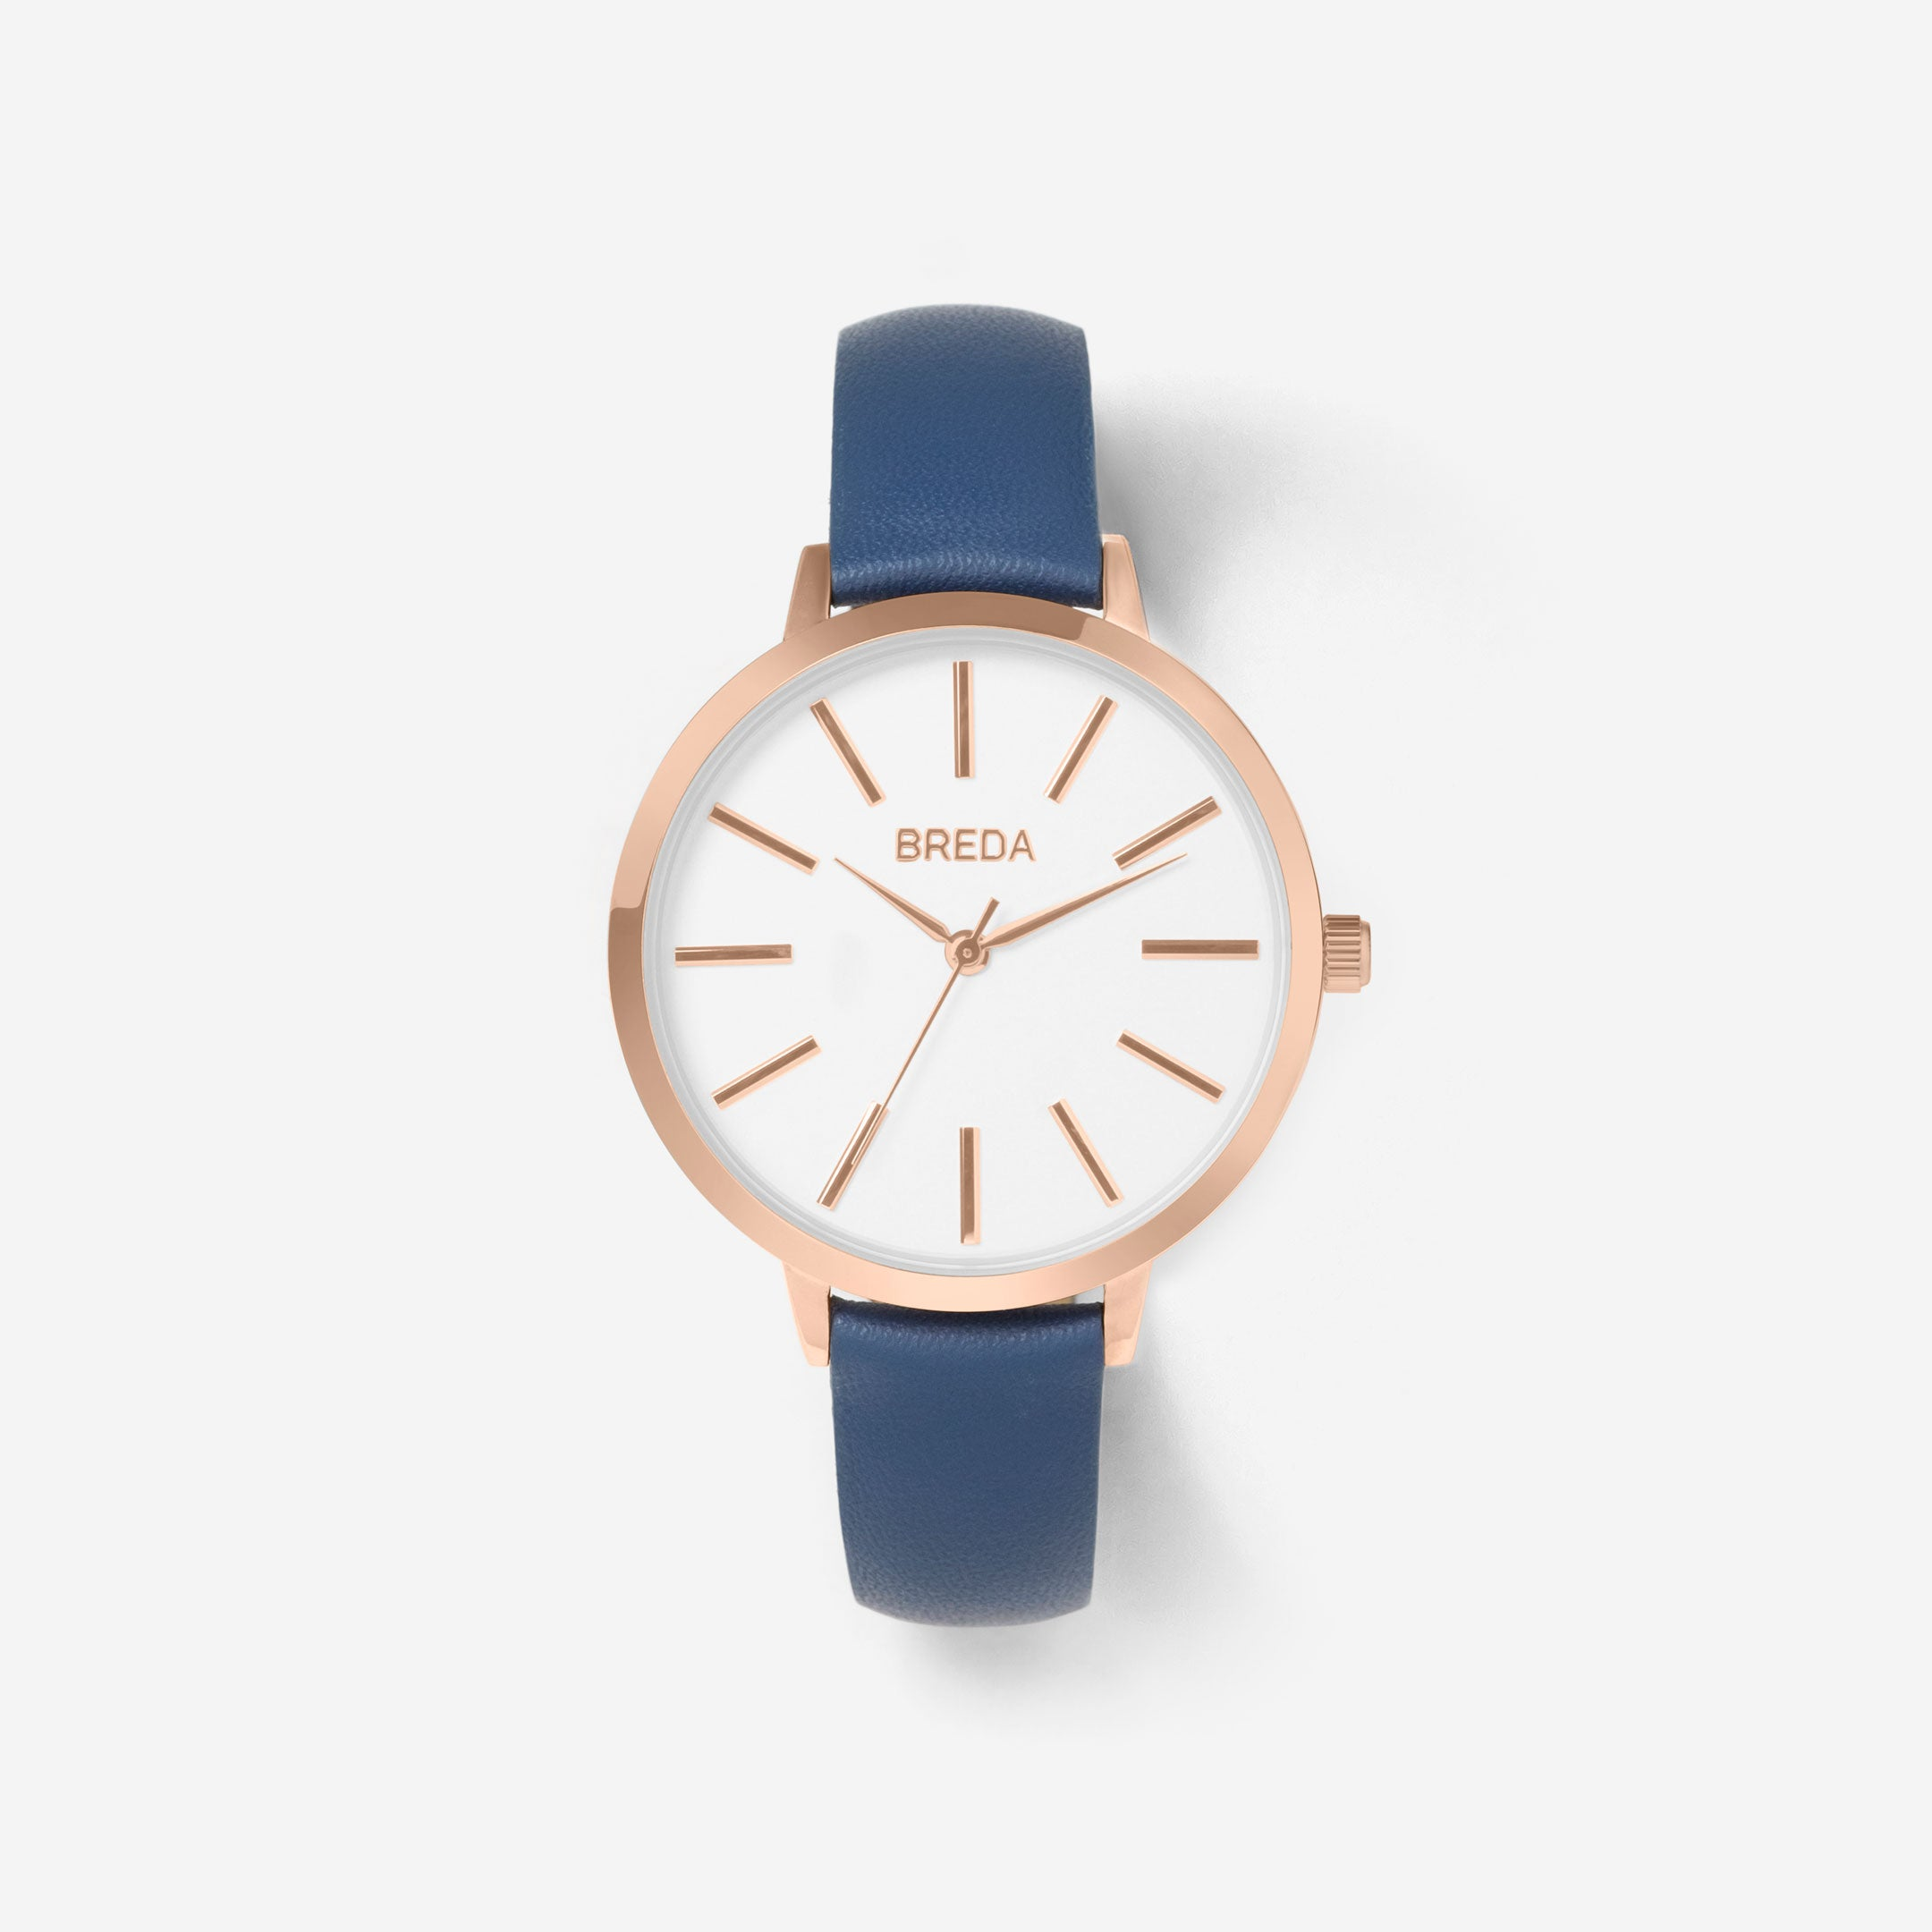 //cdn.shopify.com/s/files/1/0879/6650/products/breda-joule-1722j-rosegold-navy-leather-front_1024x1024.jpg?v=1491254369